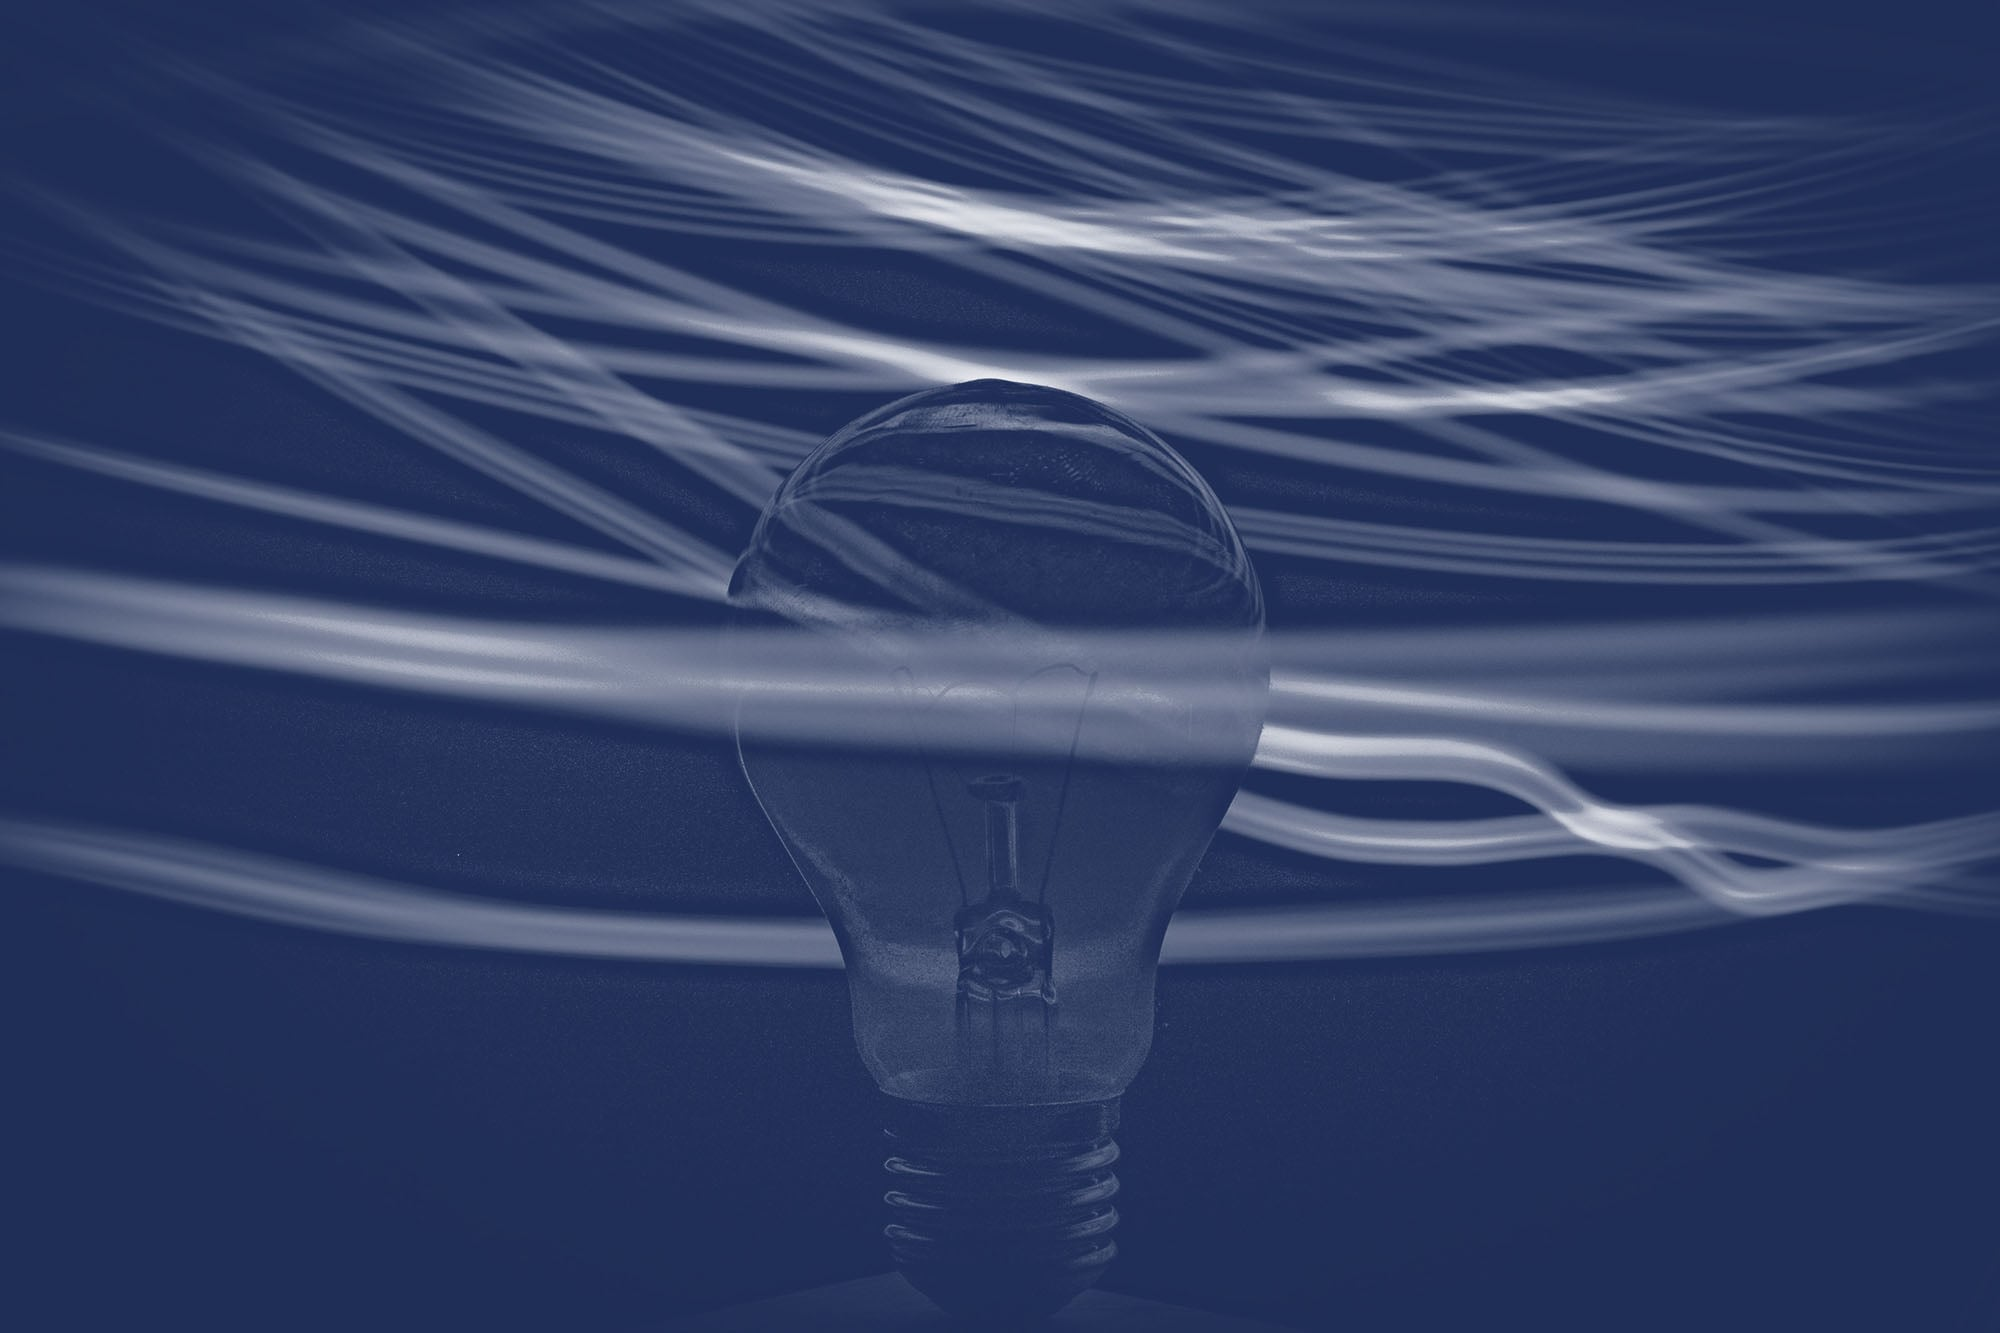 an abstract image of a lightbulb